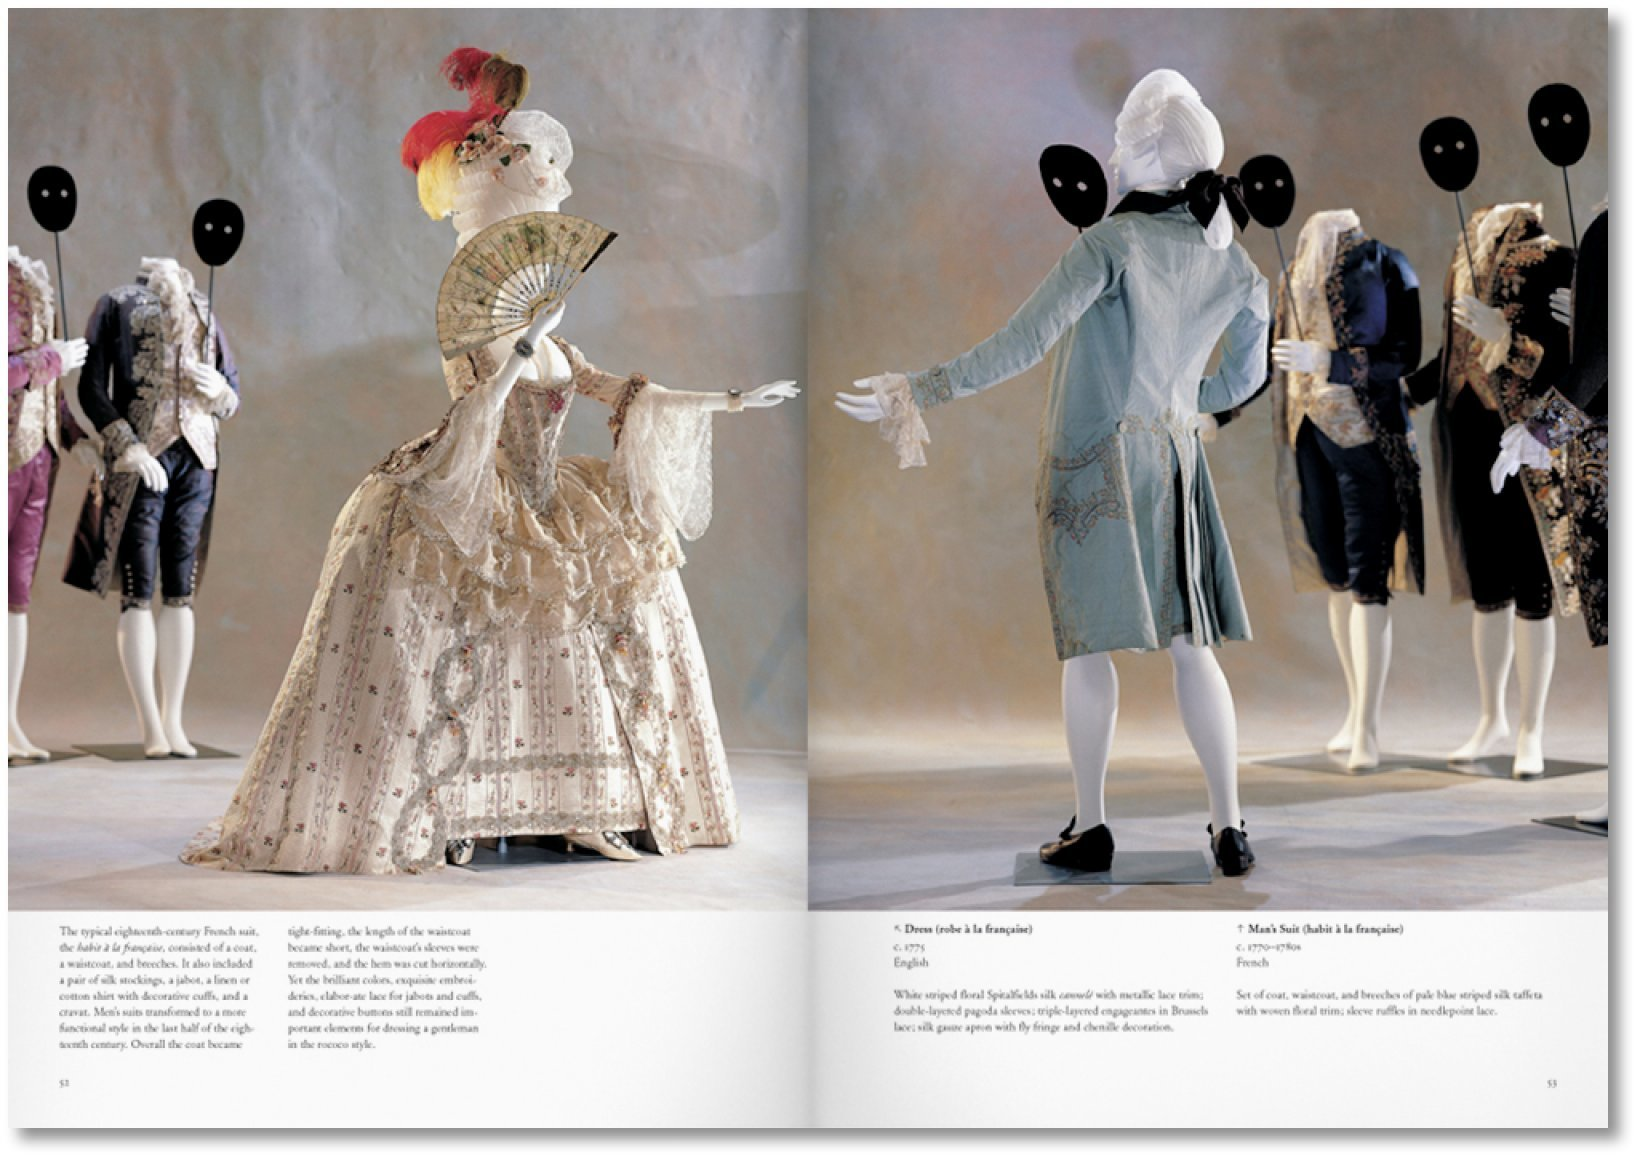 Fashion 18th century new france 13 Facts About 18th Century French Fashion Mental Floss